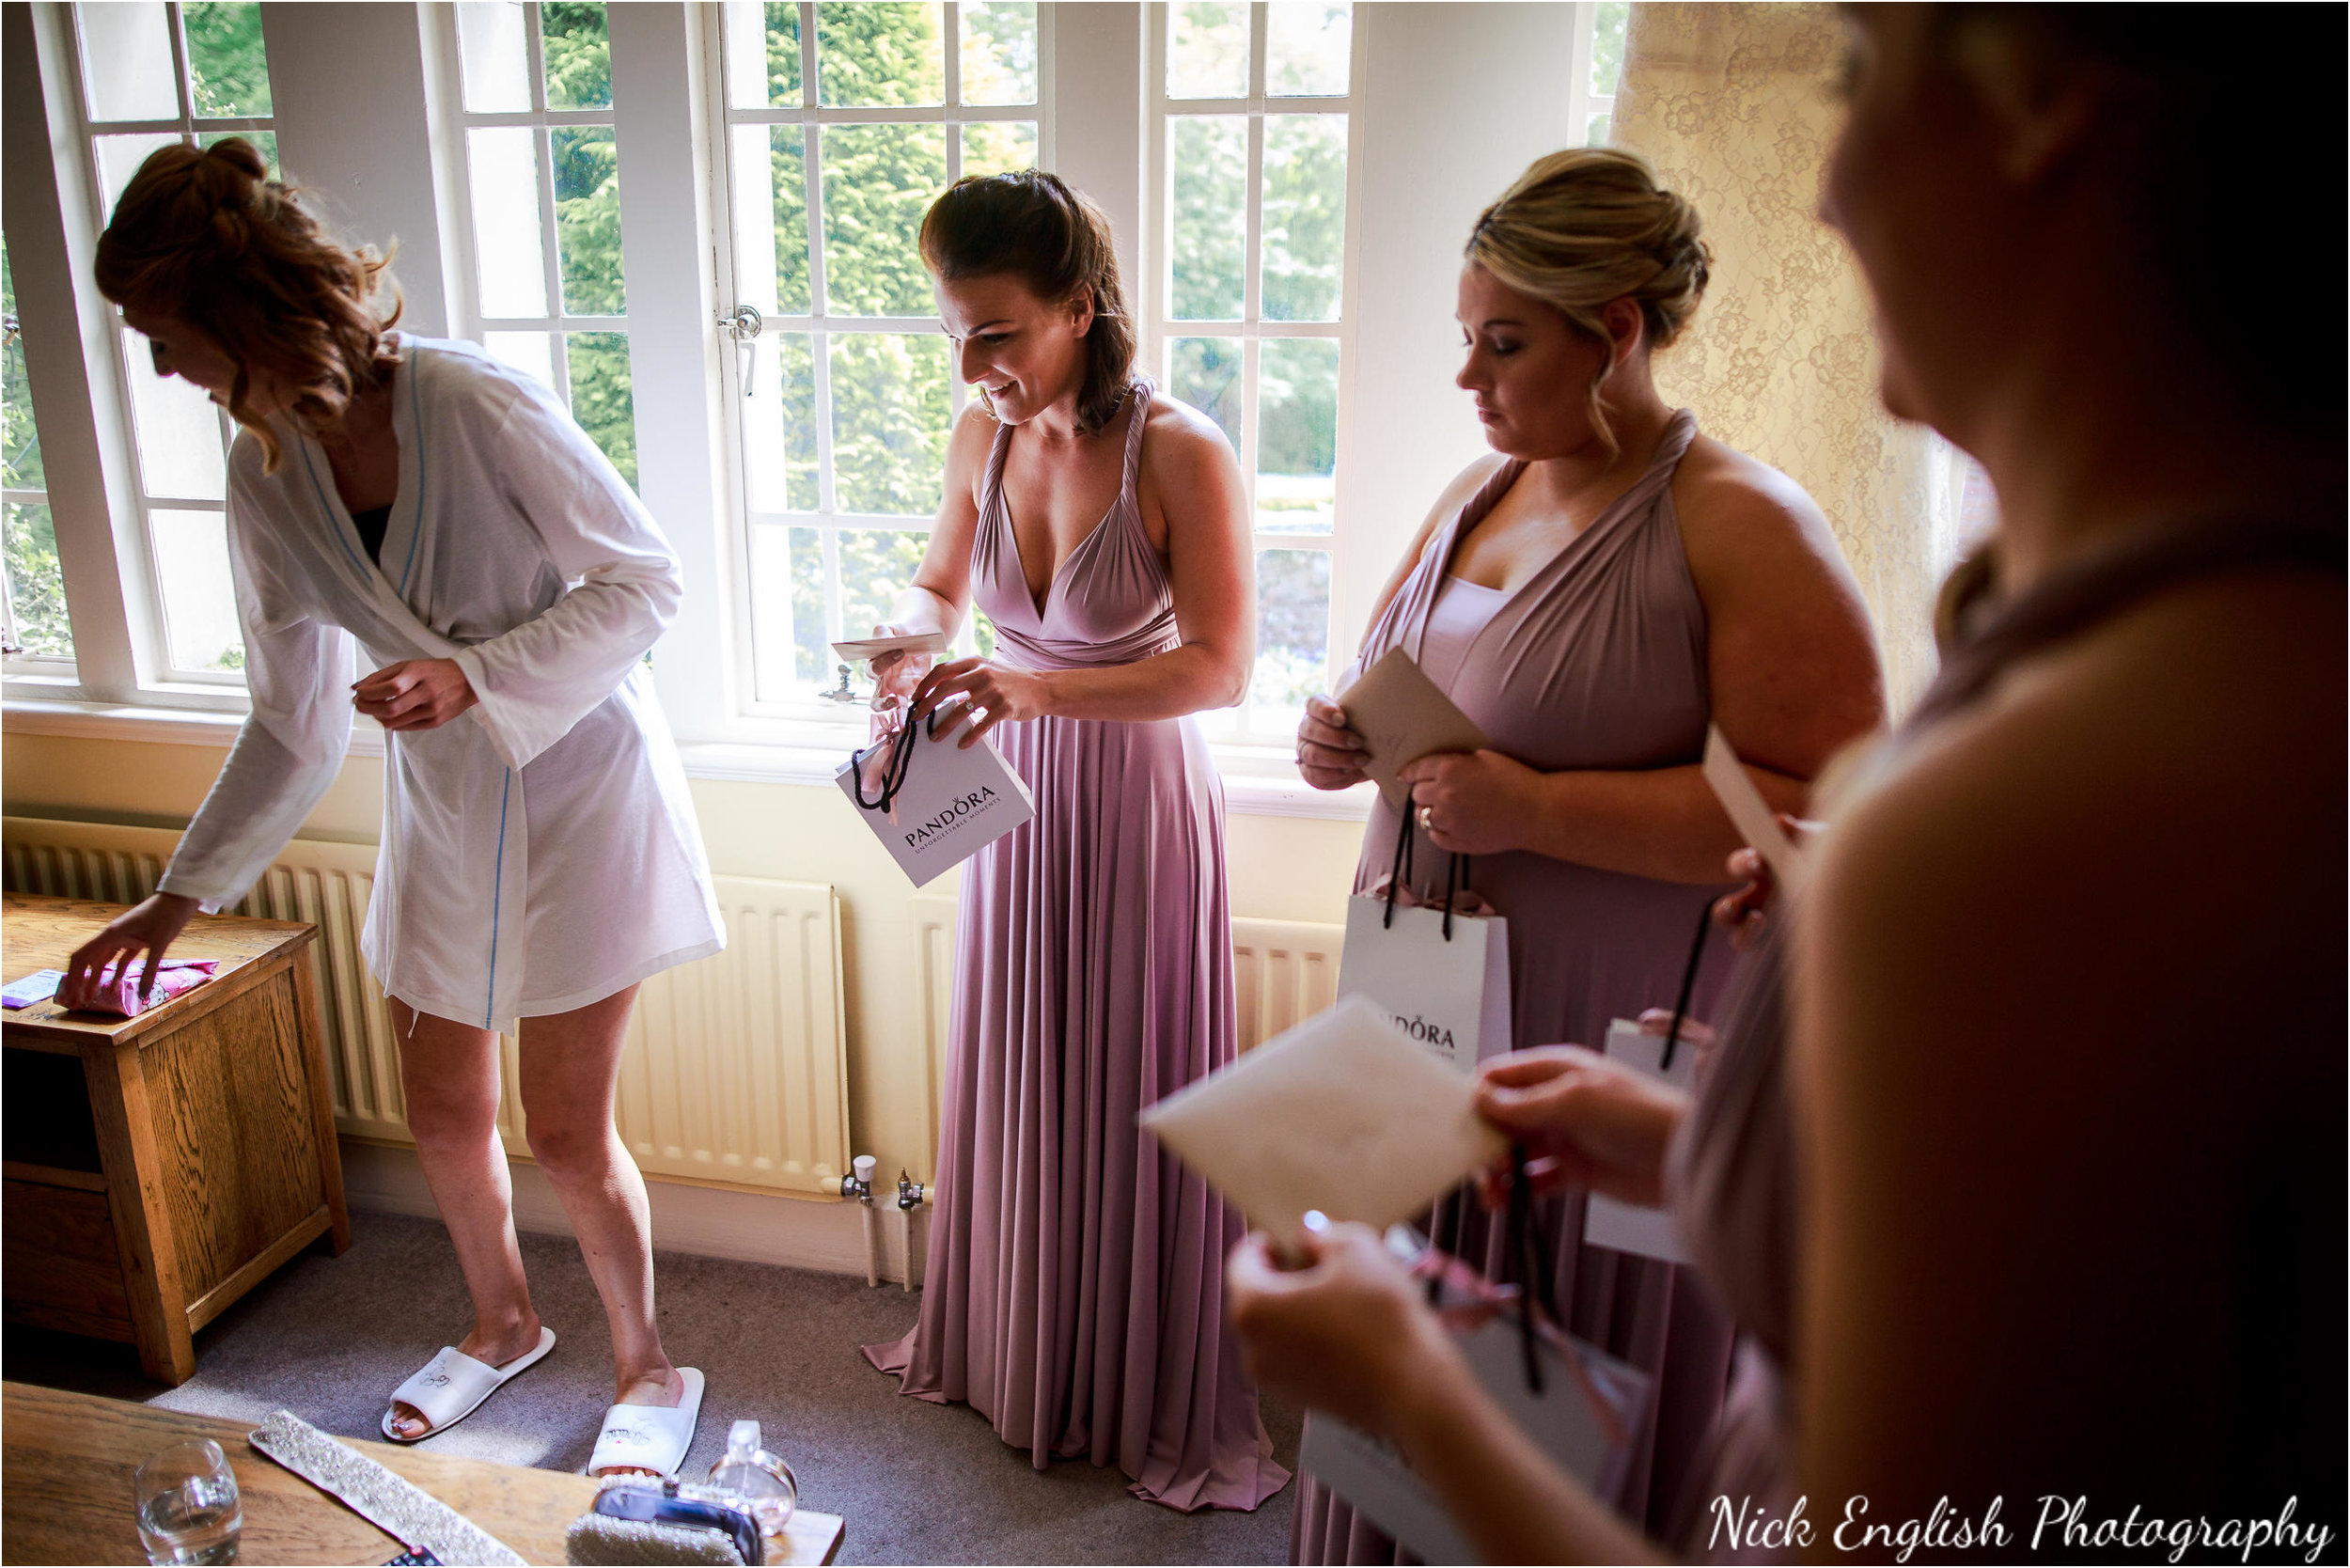 Alison James Wedding Photographs at Eaves Hall West Bradford 54jpg.jpeg